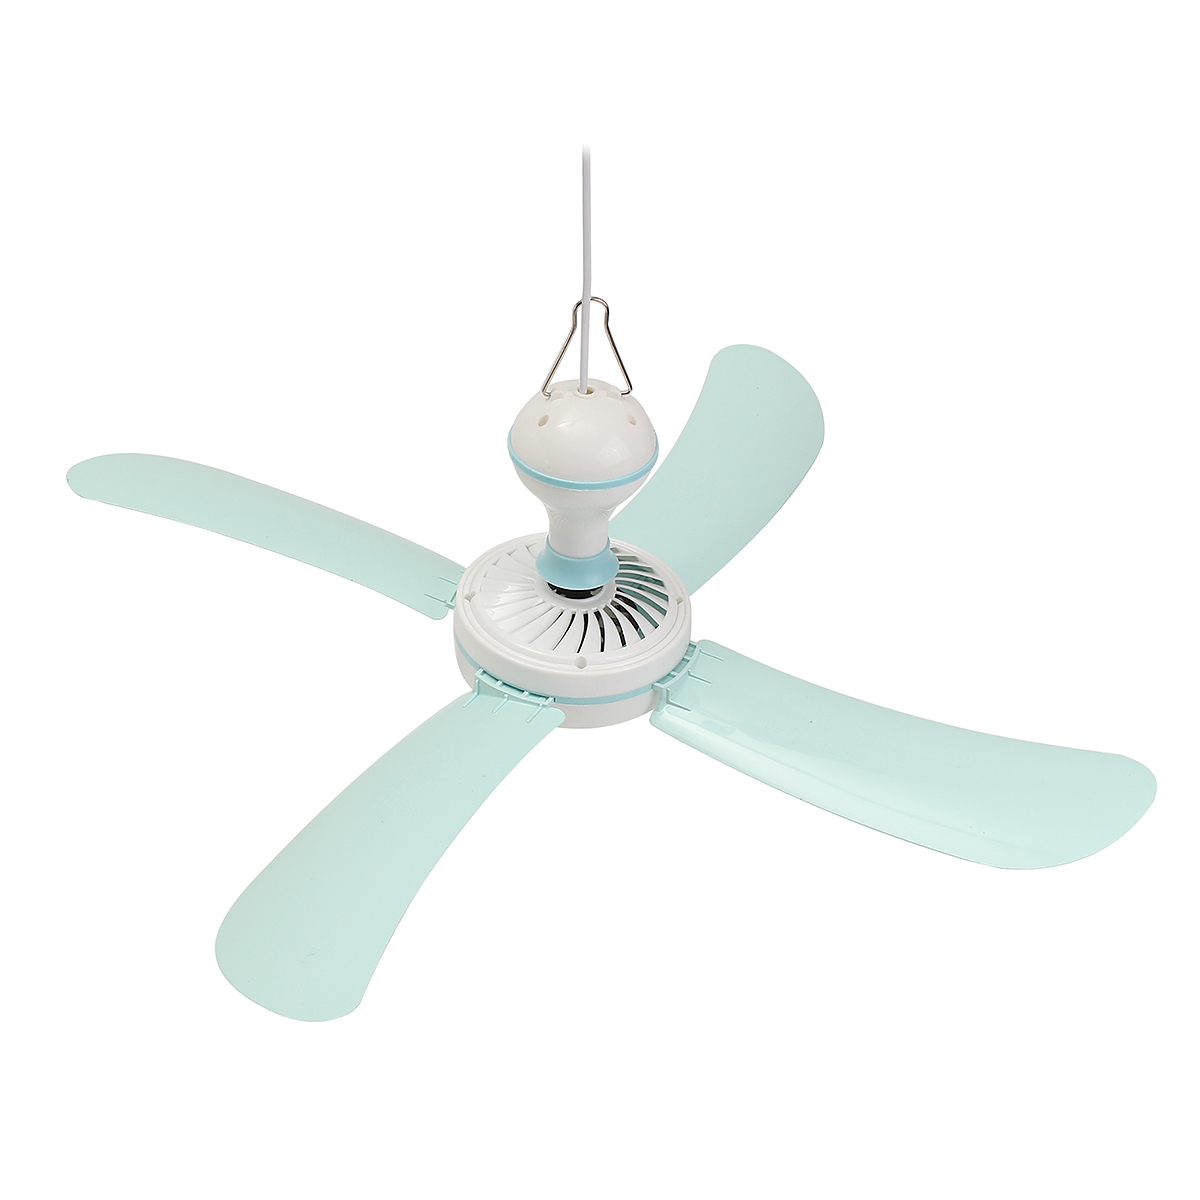 electric 23 portable 4 blade mini 220v ac ceiling fan easy hang no wiring needed [ 1200 x 1200 Pixel ]